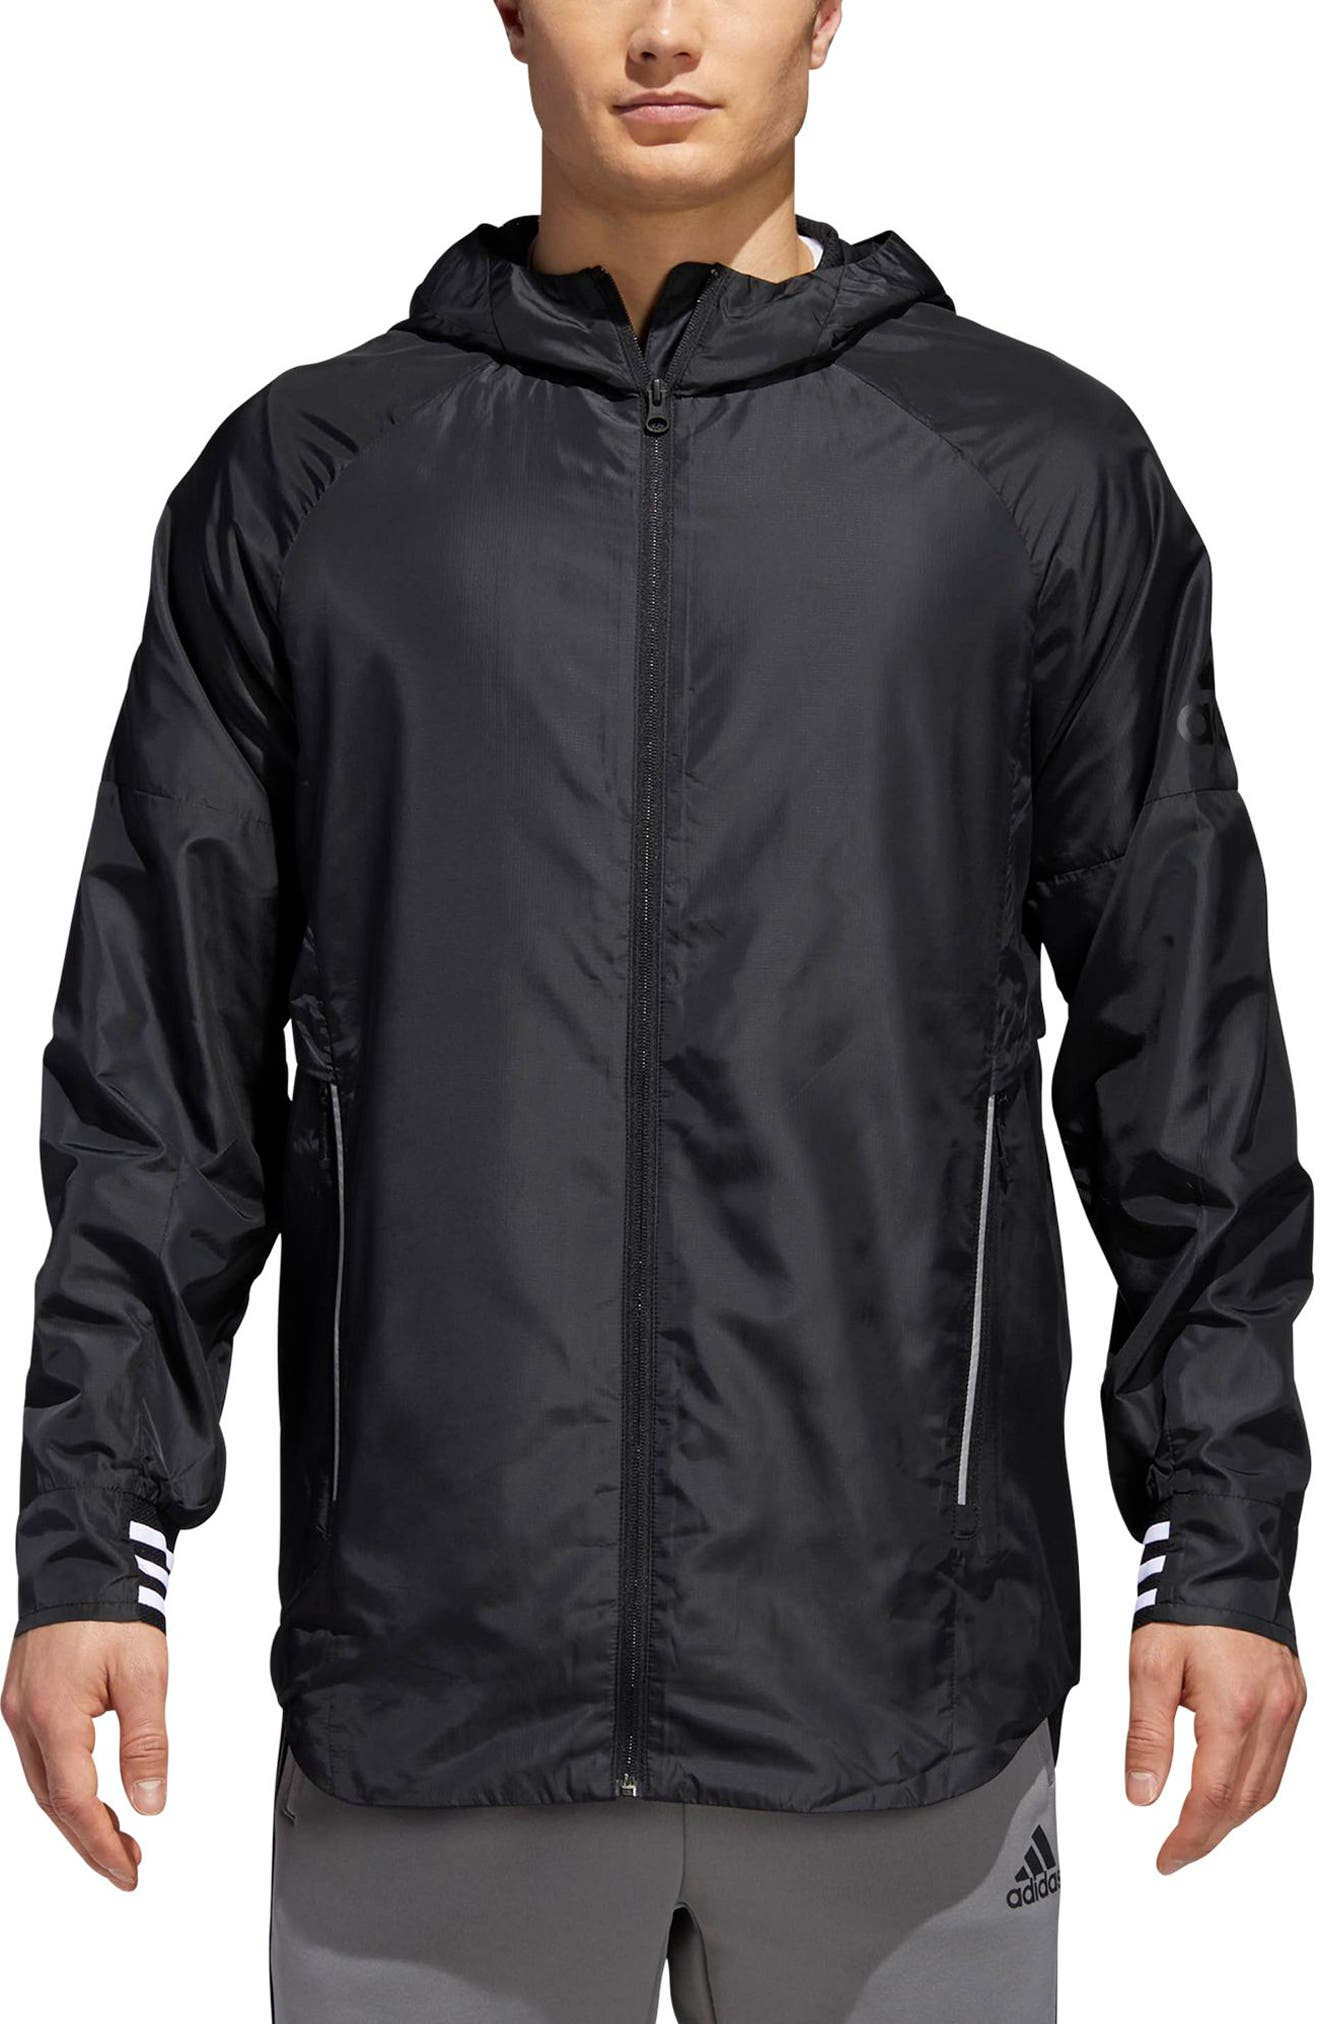 ID Wovenshell Jacket,                         Main,                         color, 001